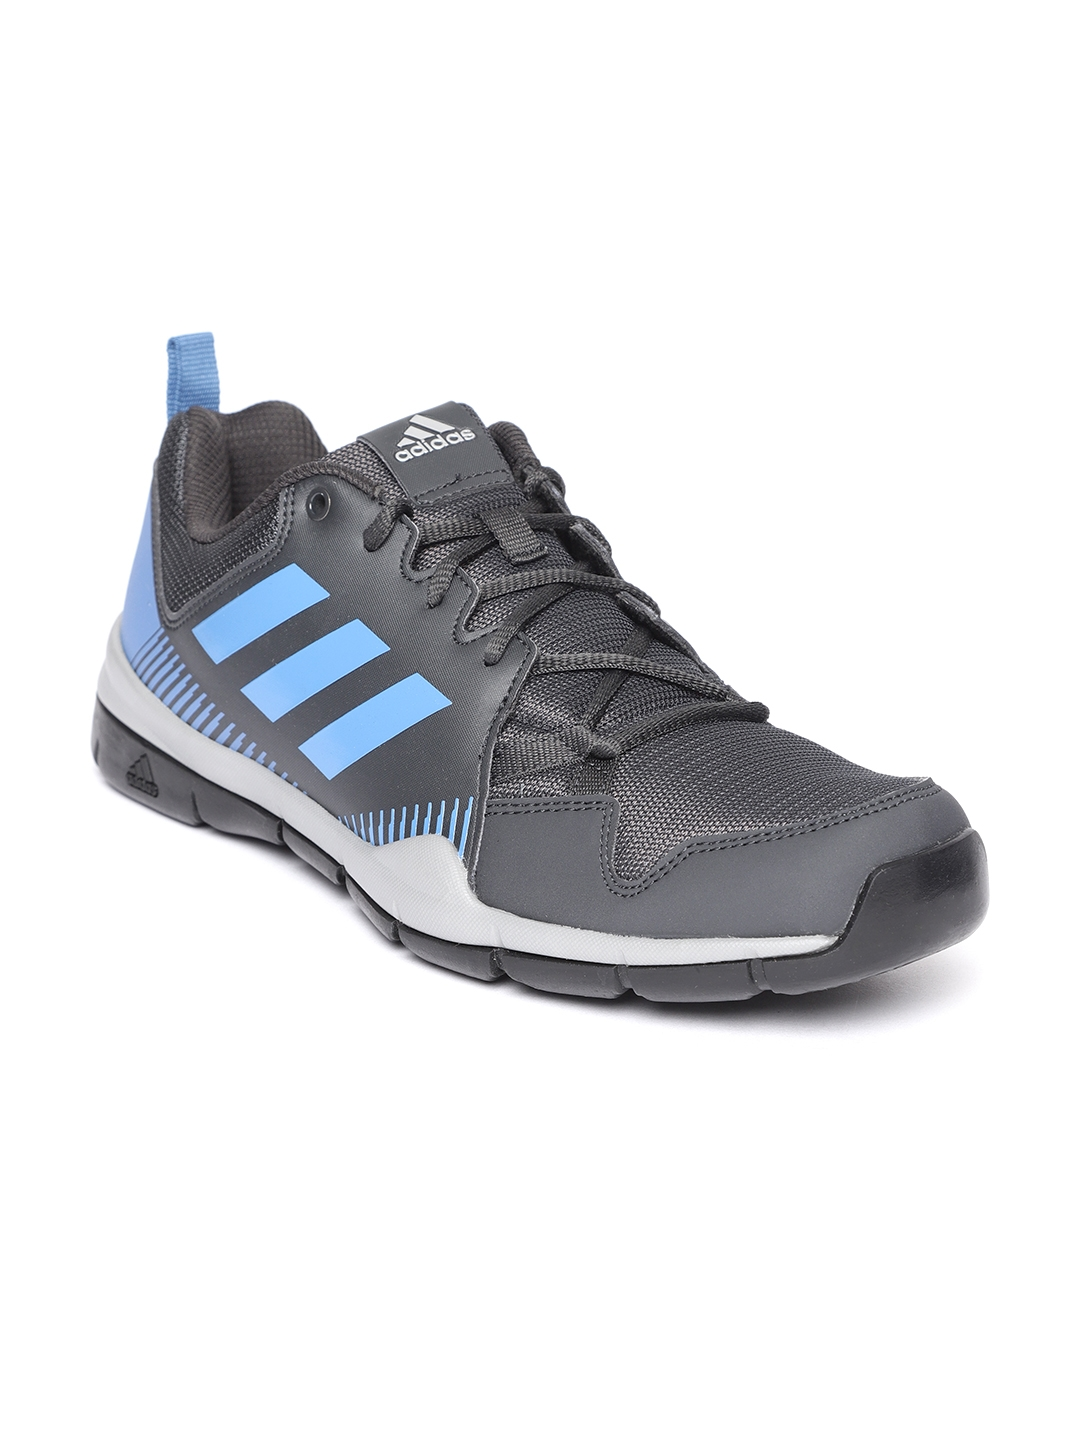 low priced 38995 76da4 ADIDAS Men Charcoal Grey Tell Path Outdoor Shoes